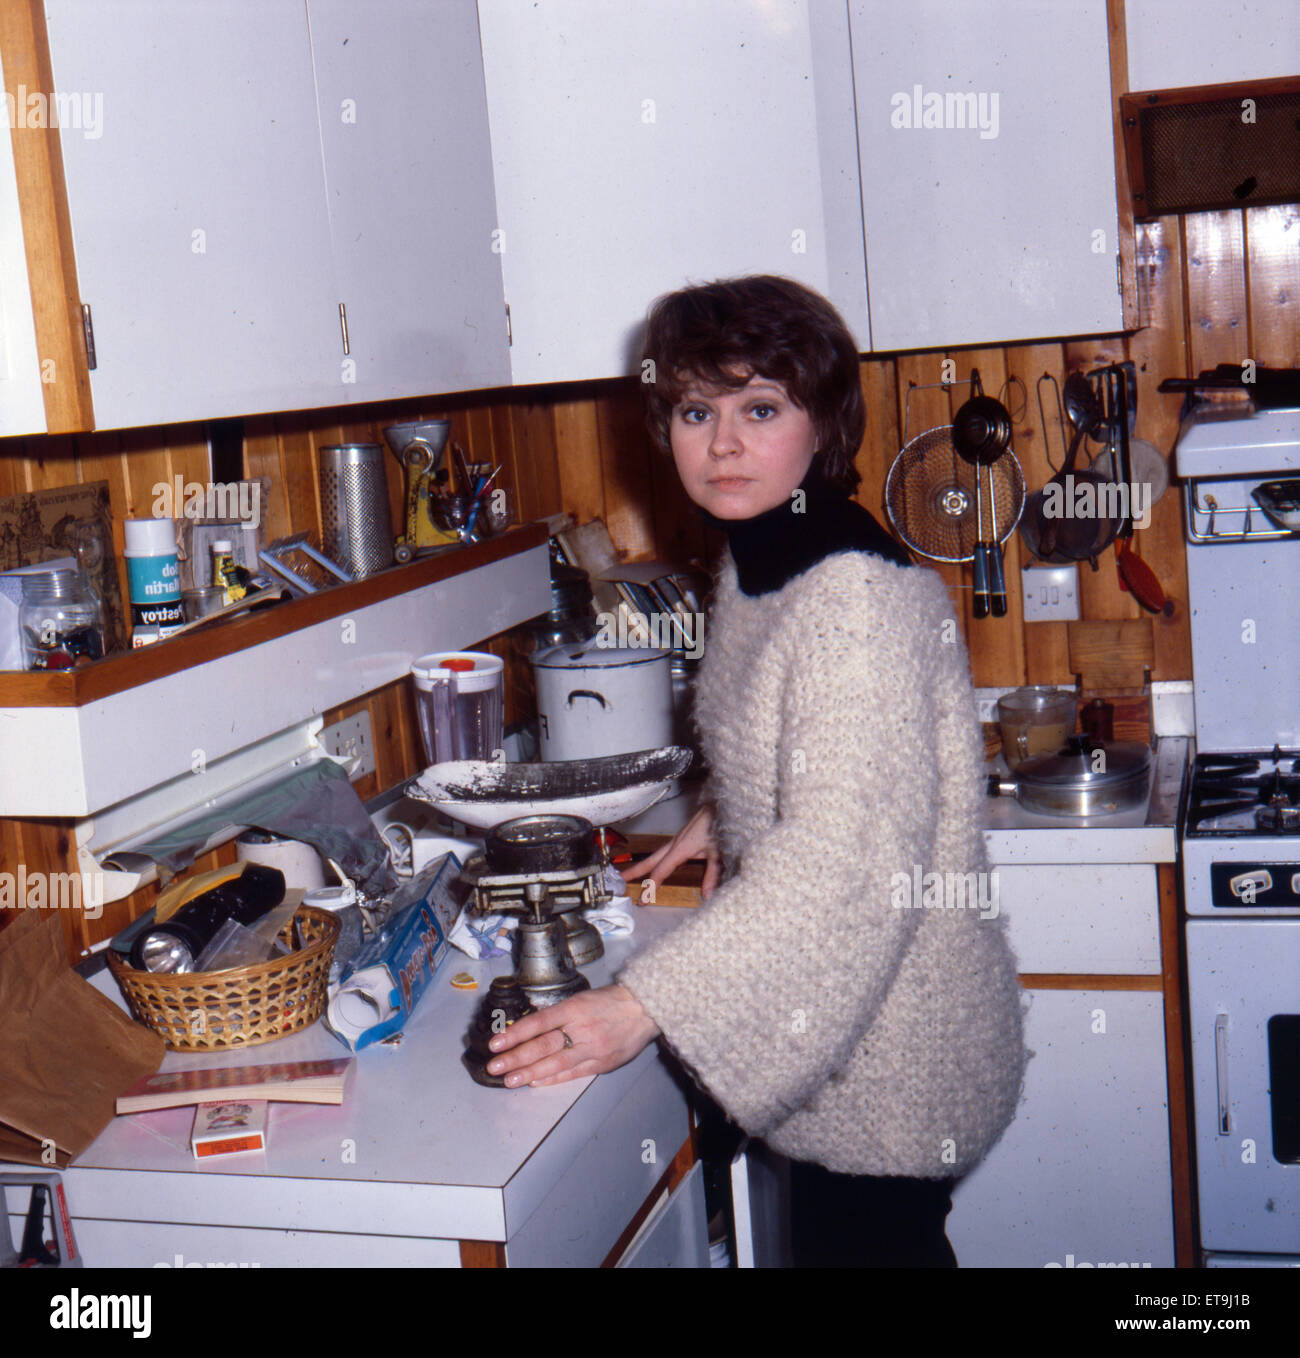 Prunella Scales, Actress, January 1980. - Stock Image